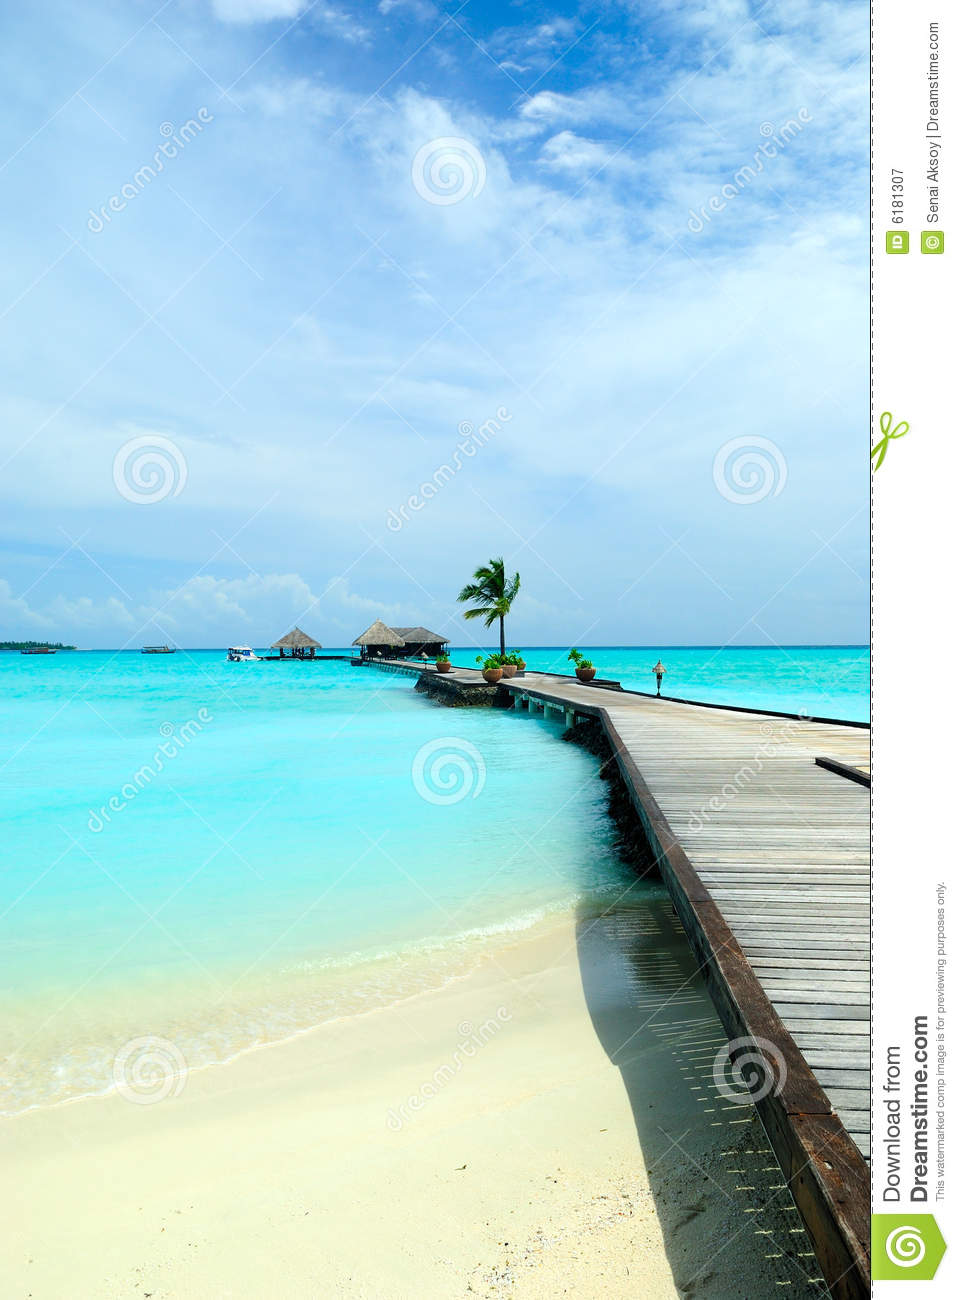 Beautiful Ocean View Royalty Free Stock Photography - Image: 6181307